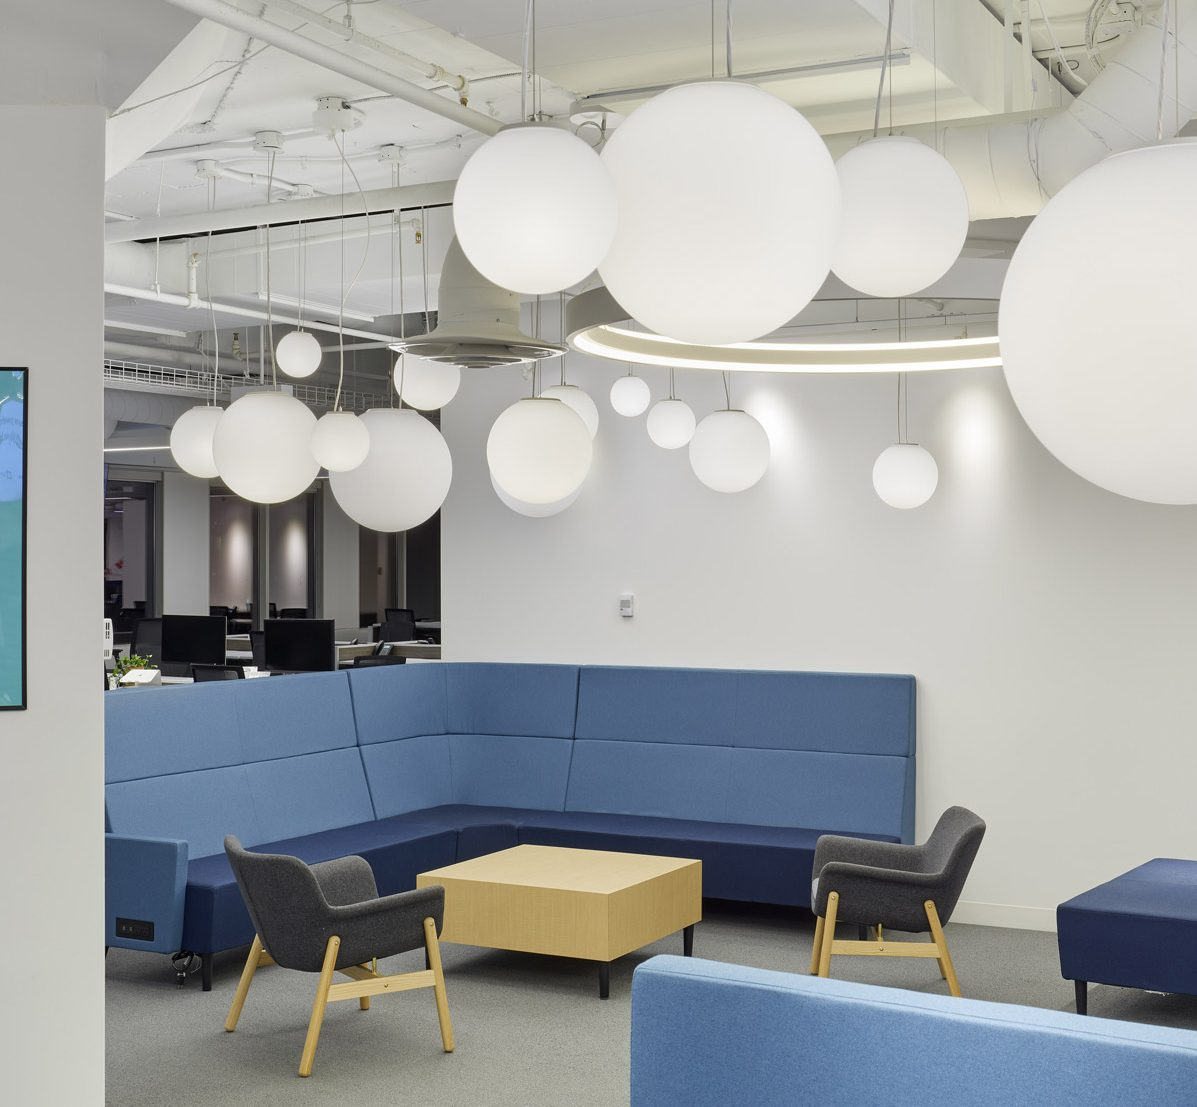 workplace design, What will post-pandemic workspaces look like?